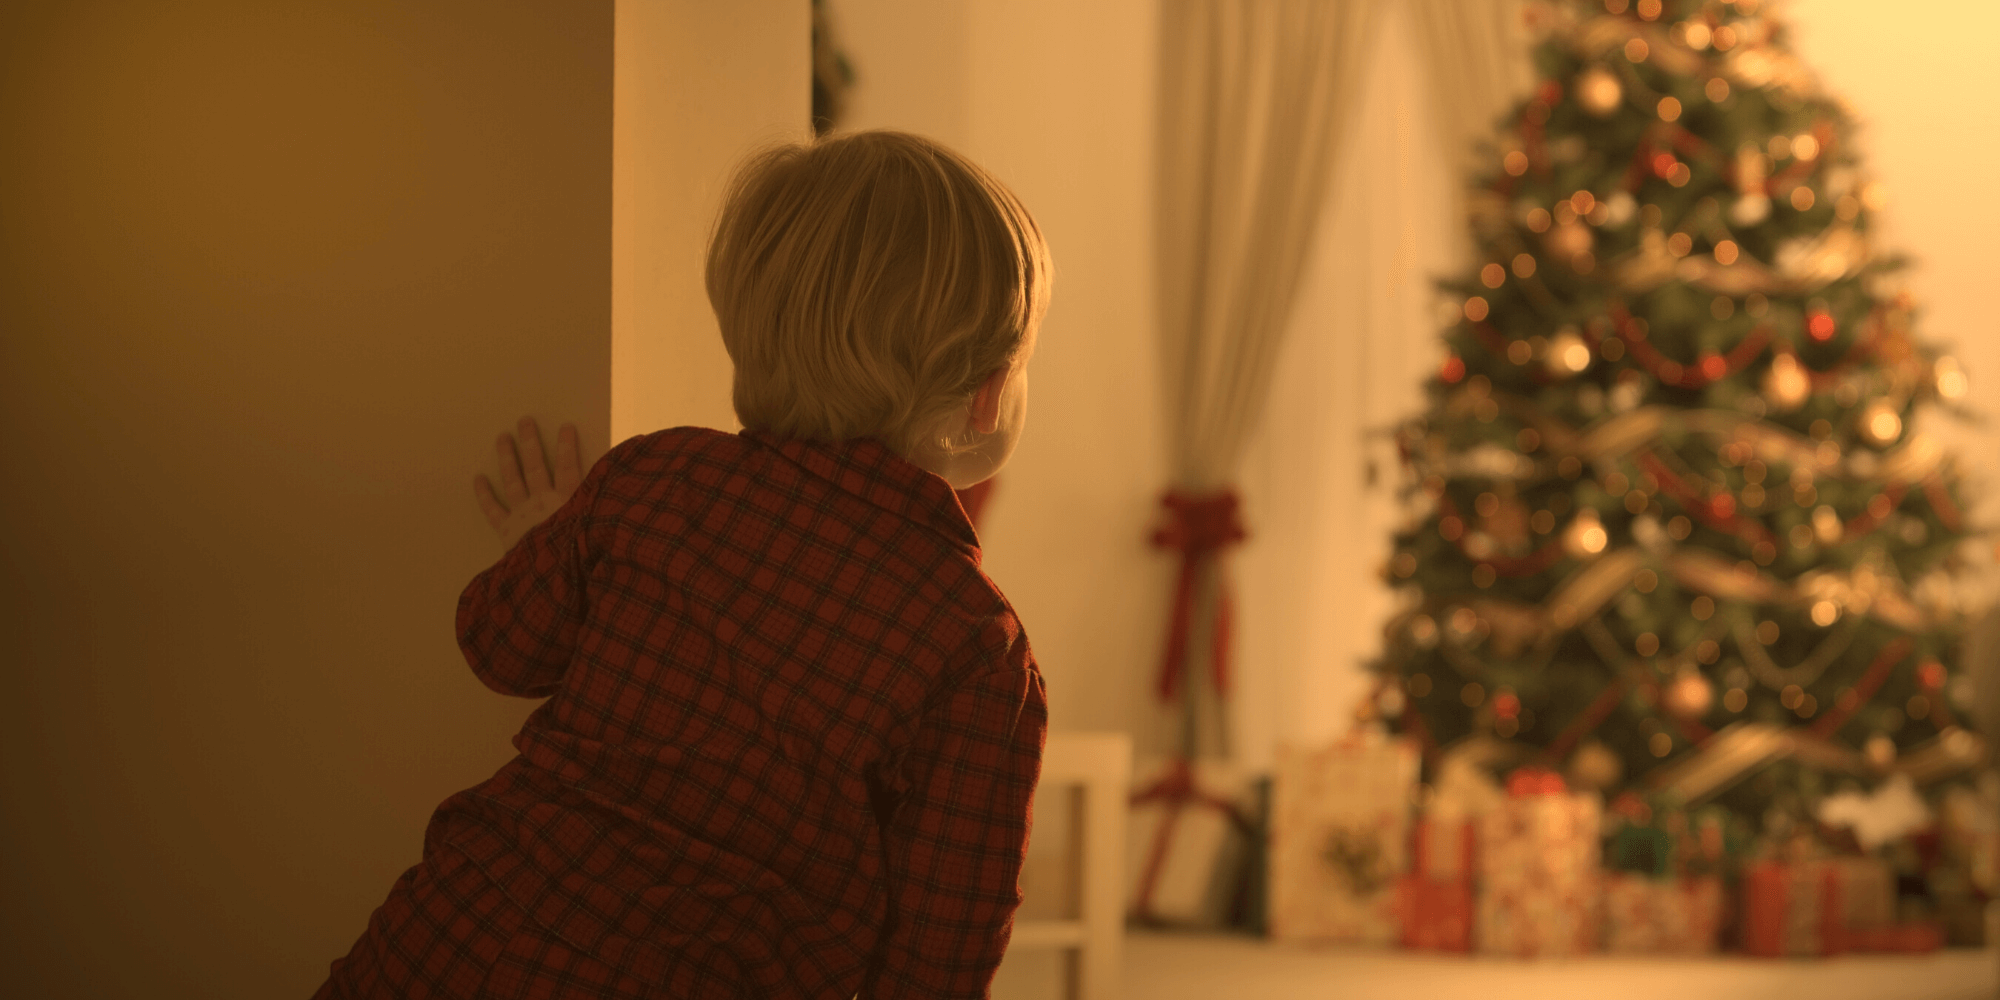 Little boy looking at Christmas tree and presents